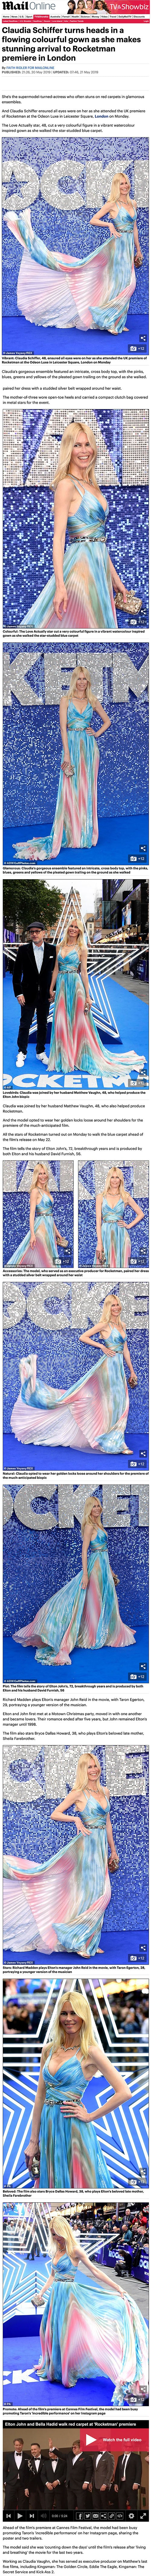 Claudia Schiffer attended to Rocketman premiere in London wearing a triangular motif necklace set with triangle cut Diamonds in blackened 18ct white gold and a rose cut centre Diamond ring surronded by pink starburst guilloché enamel and rose cut Diamonds in 18t red gold Countess ring designed by Solange Azagury-Partridge